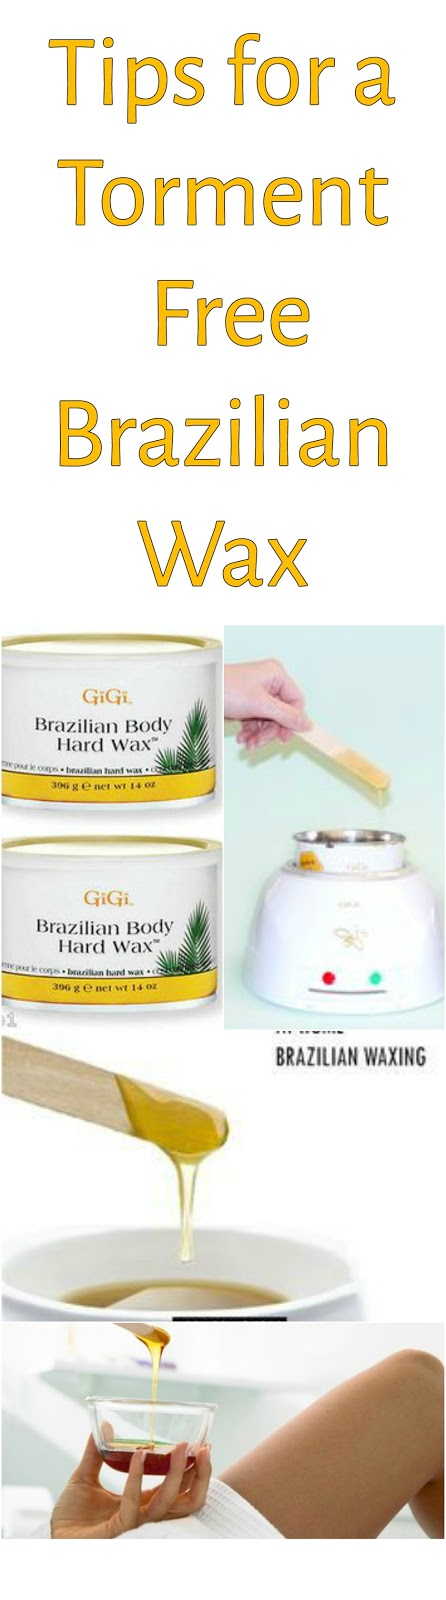 Top tips for a torment free Brazilian wax